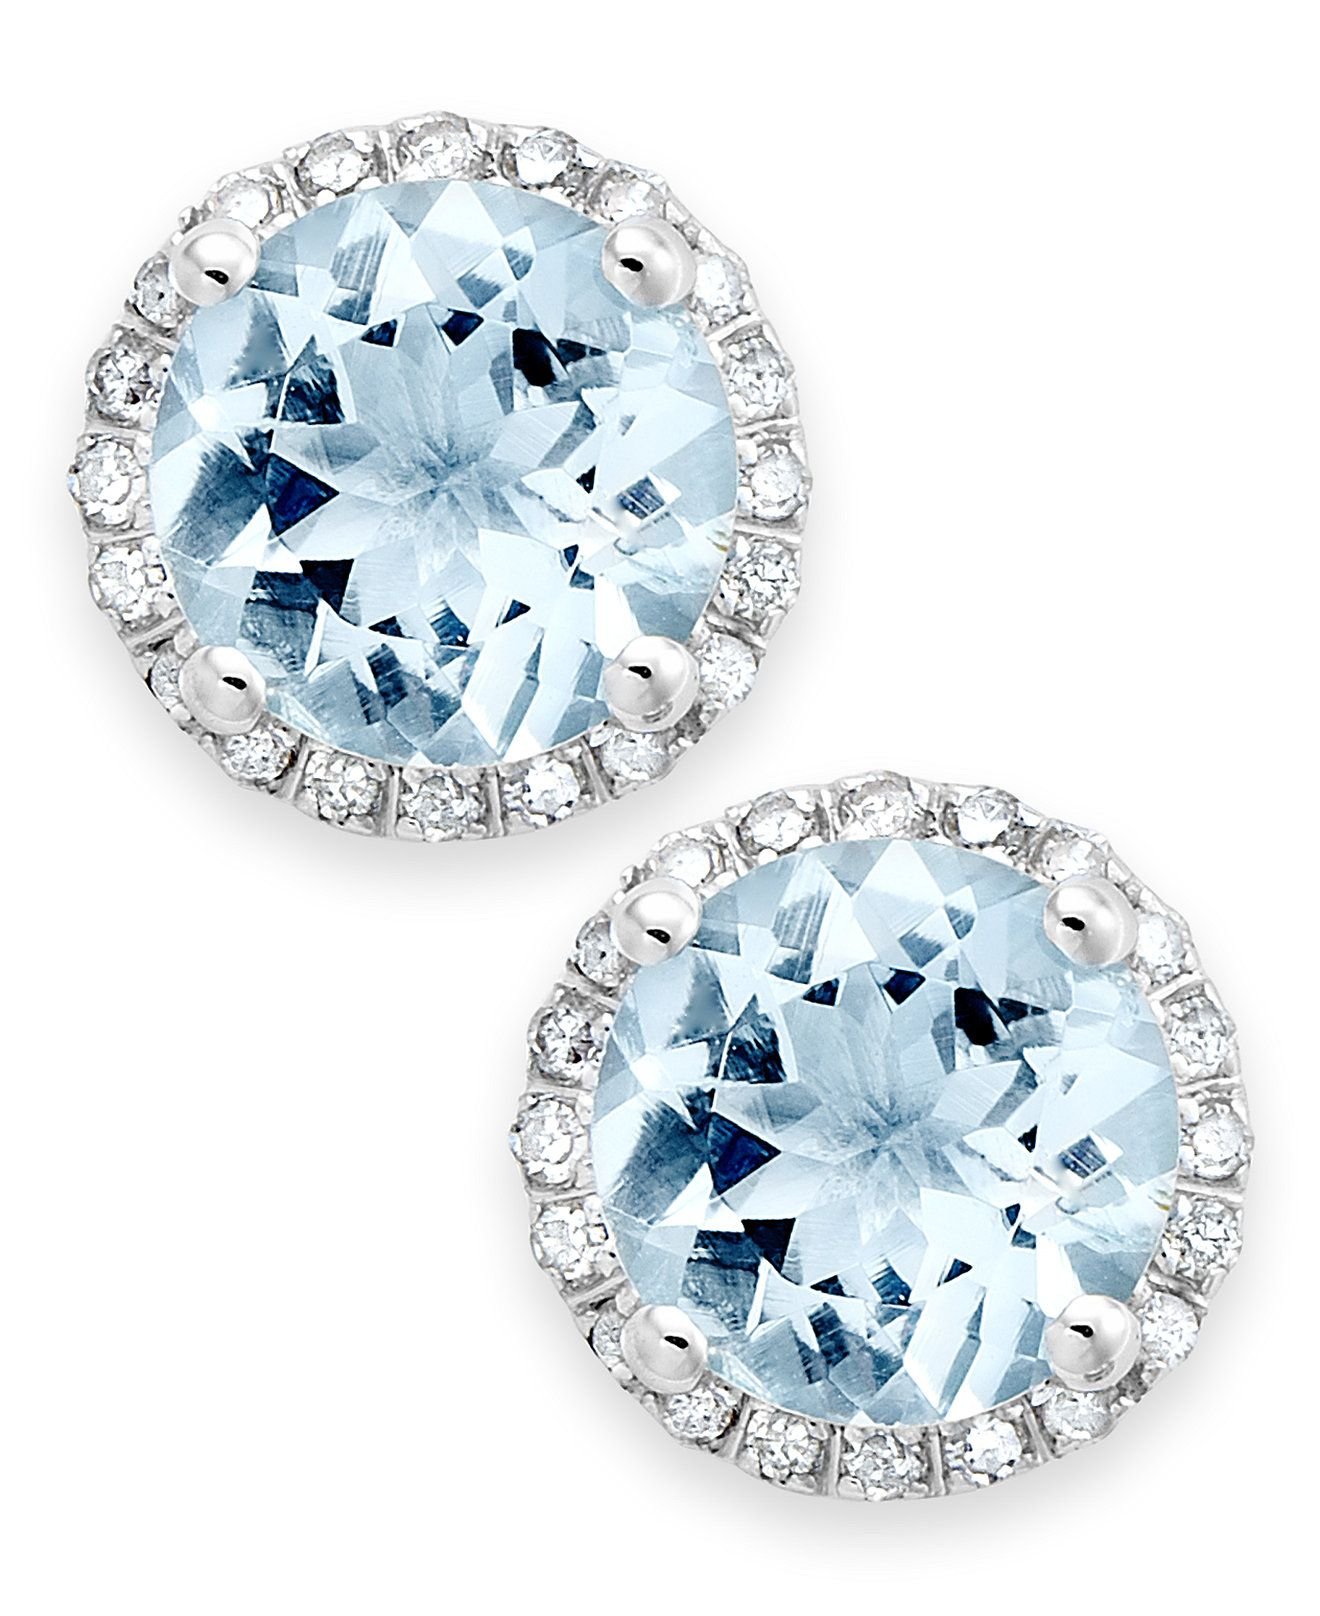 sparklers small aqua fullxfull aquamarine icy sugar zoom marine il listing stud light earrings swarovski